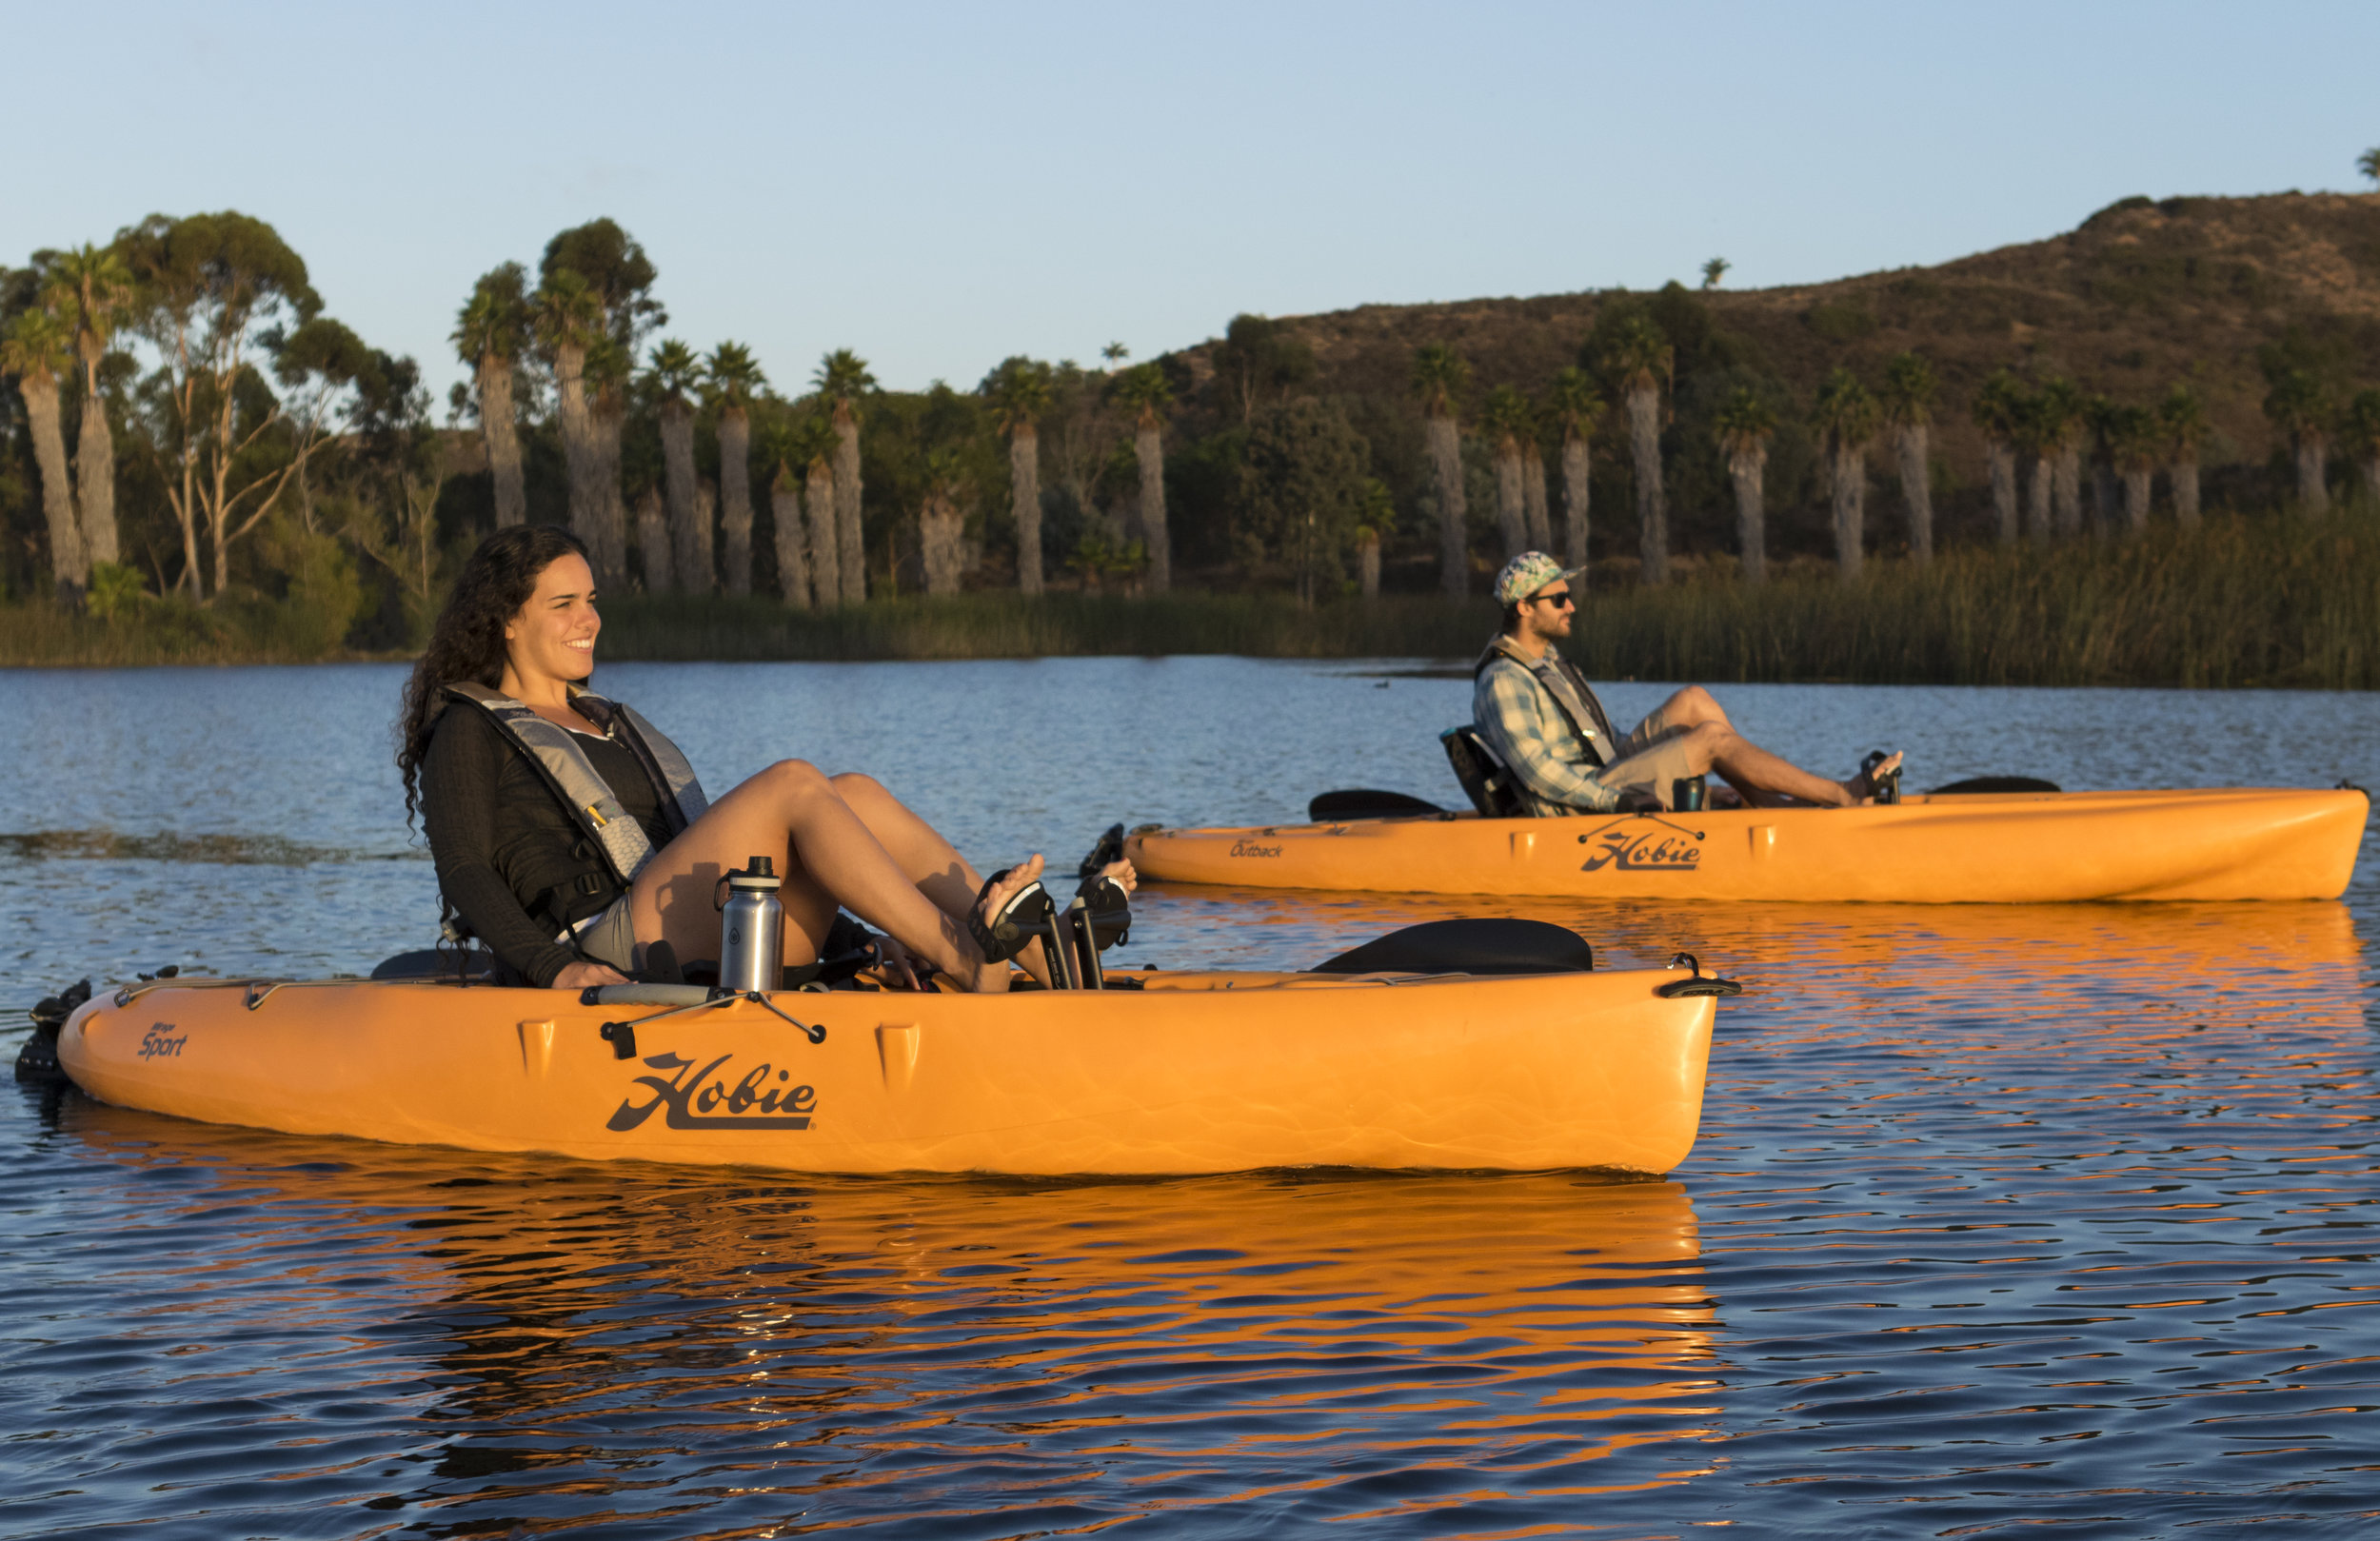 Sport_action_lake_papaya_withOutback.jpg